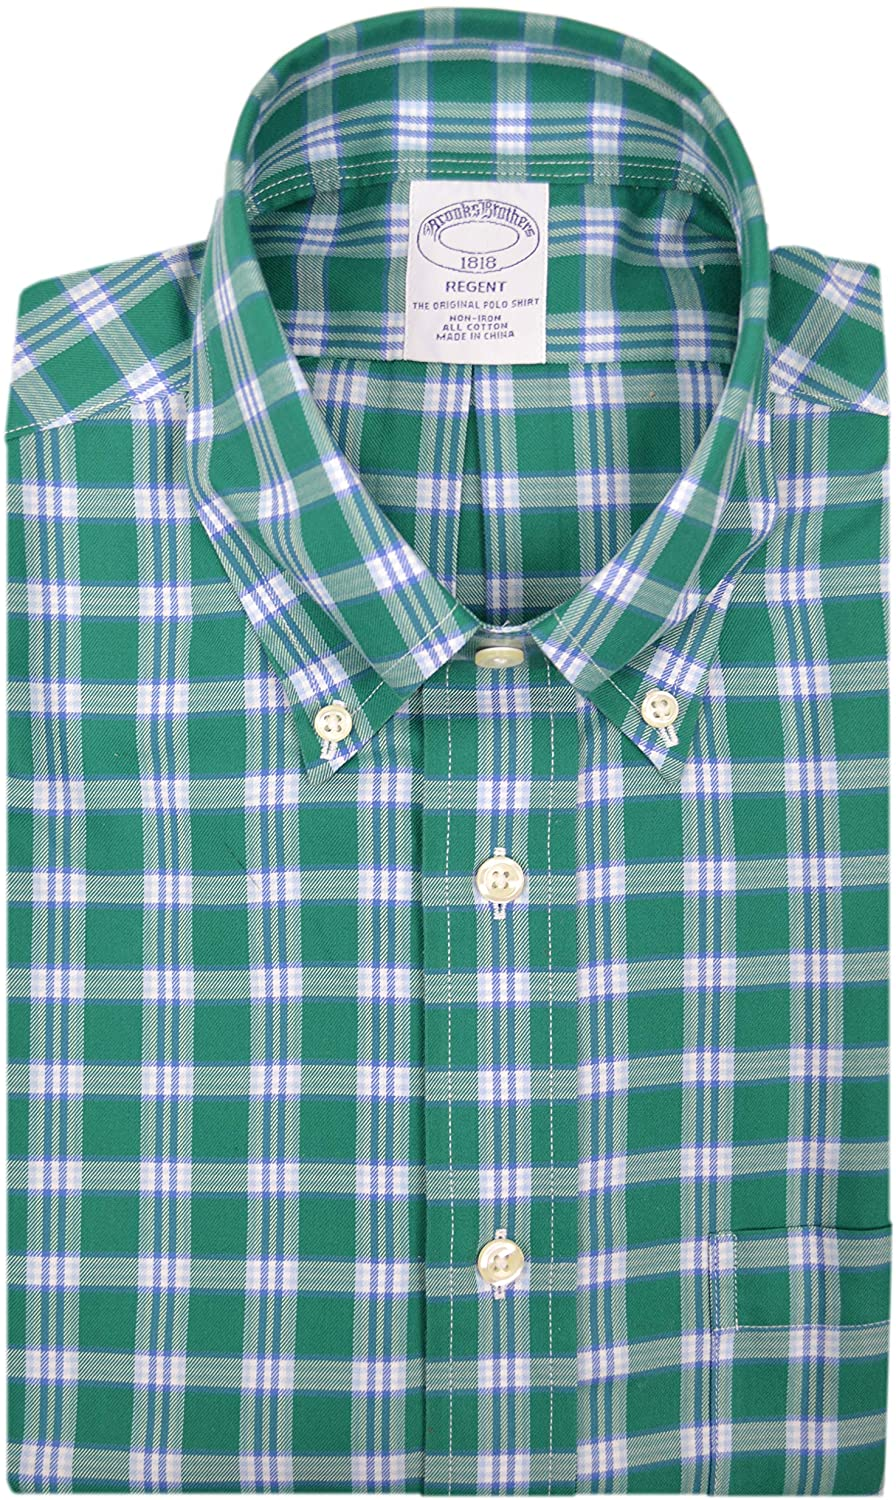 Brooks Brothers Mens 51613 Regent Fit All Cotton The Original Polo Button Down Shirt Green White Square Plaid